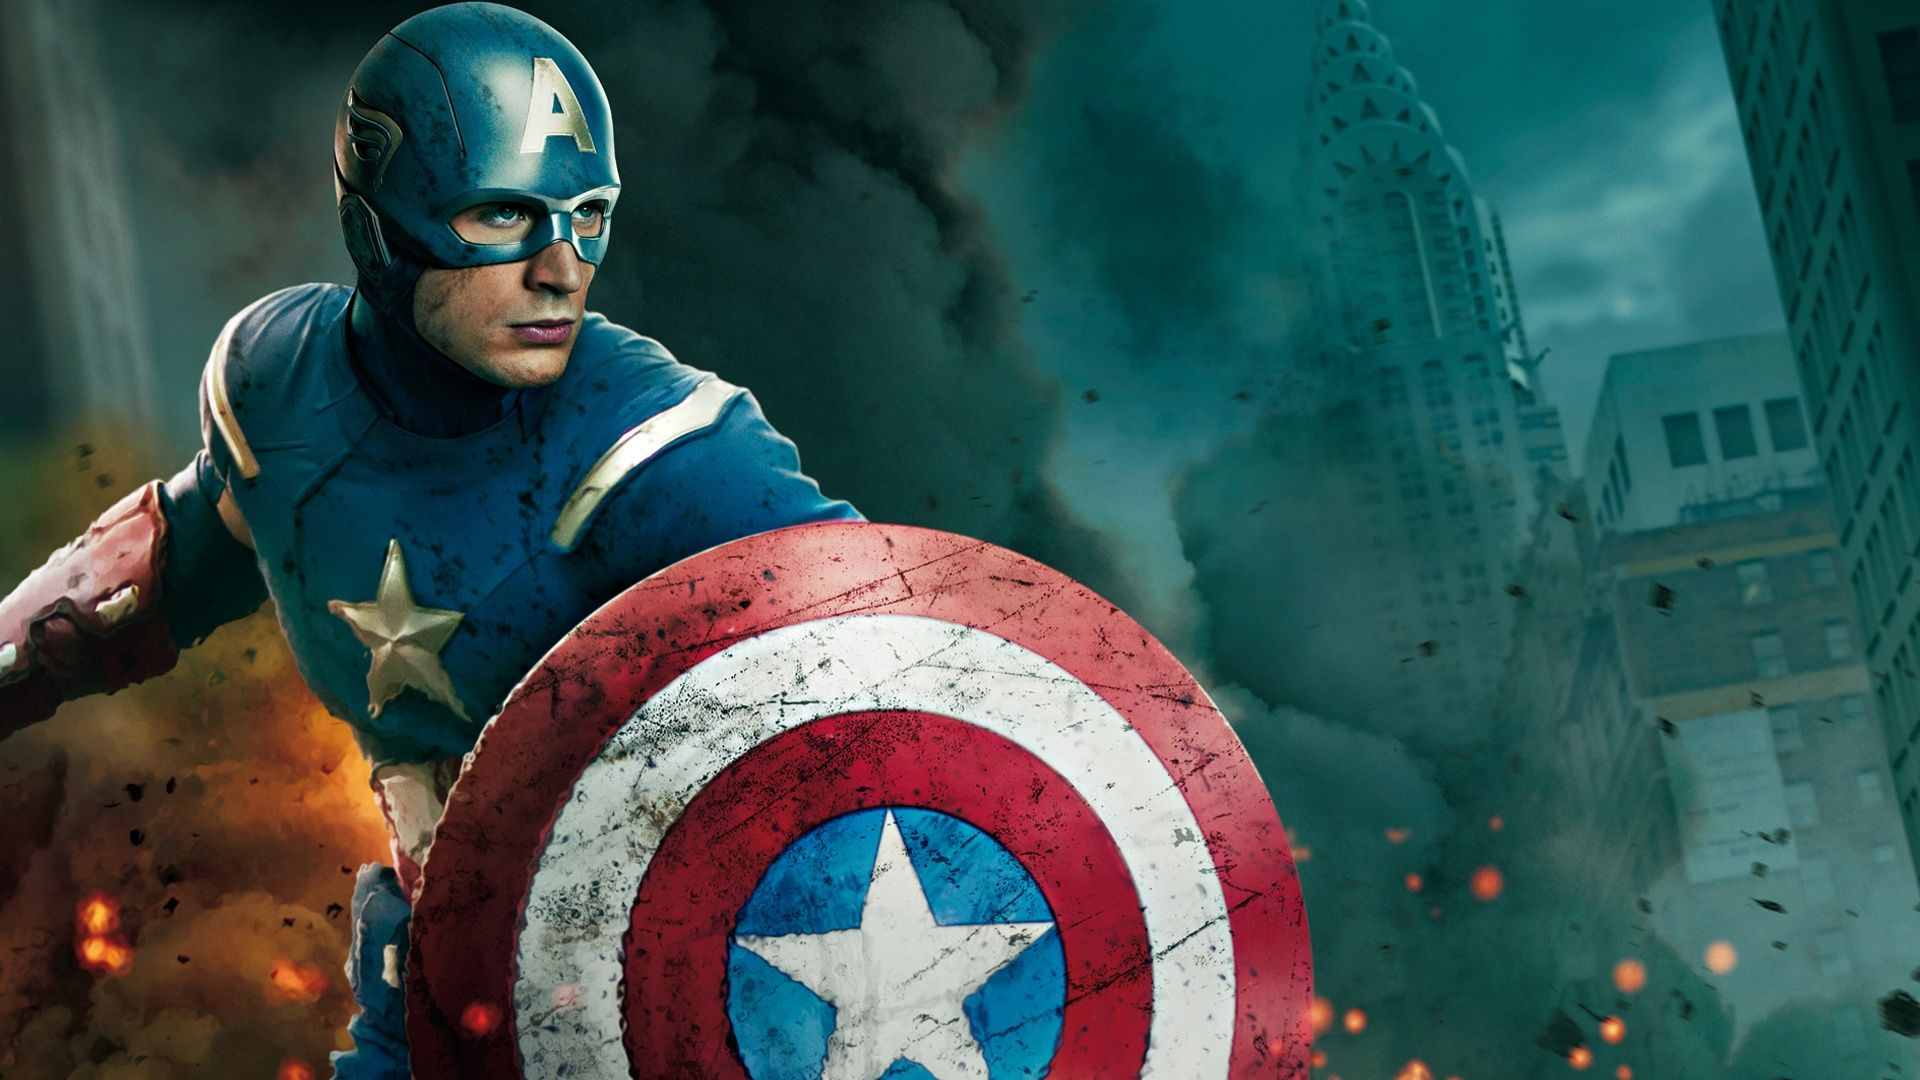 Steve Rogers The Avengers 736px 414px Art Higher Resolution Available At Sou Captain America Wallpaper Captain America Avengers Poster